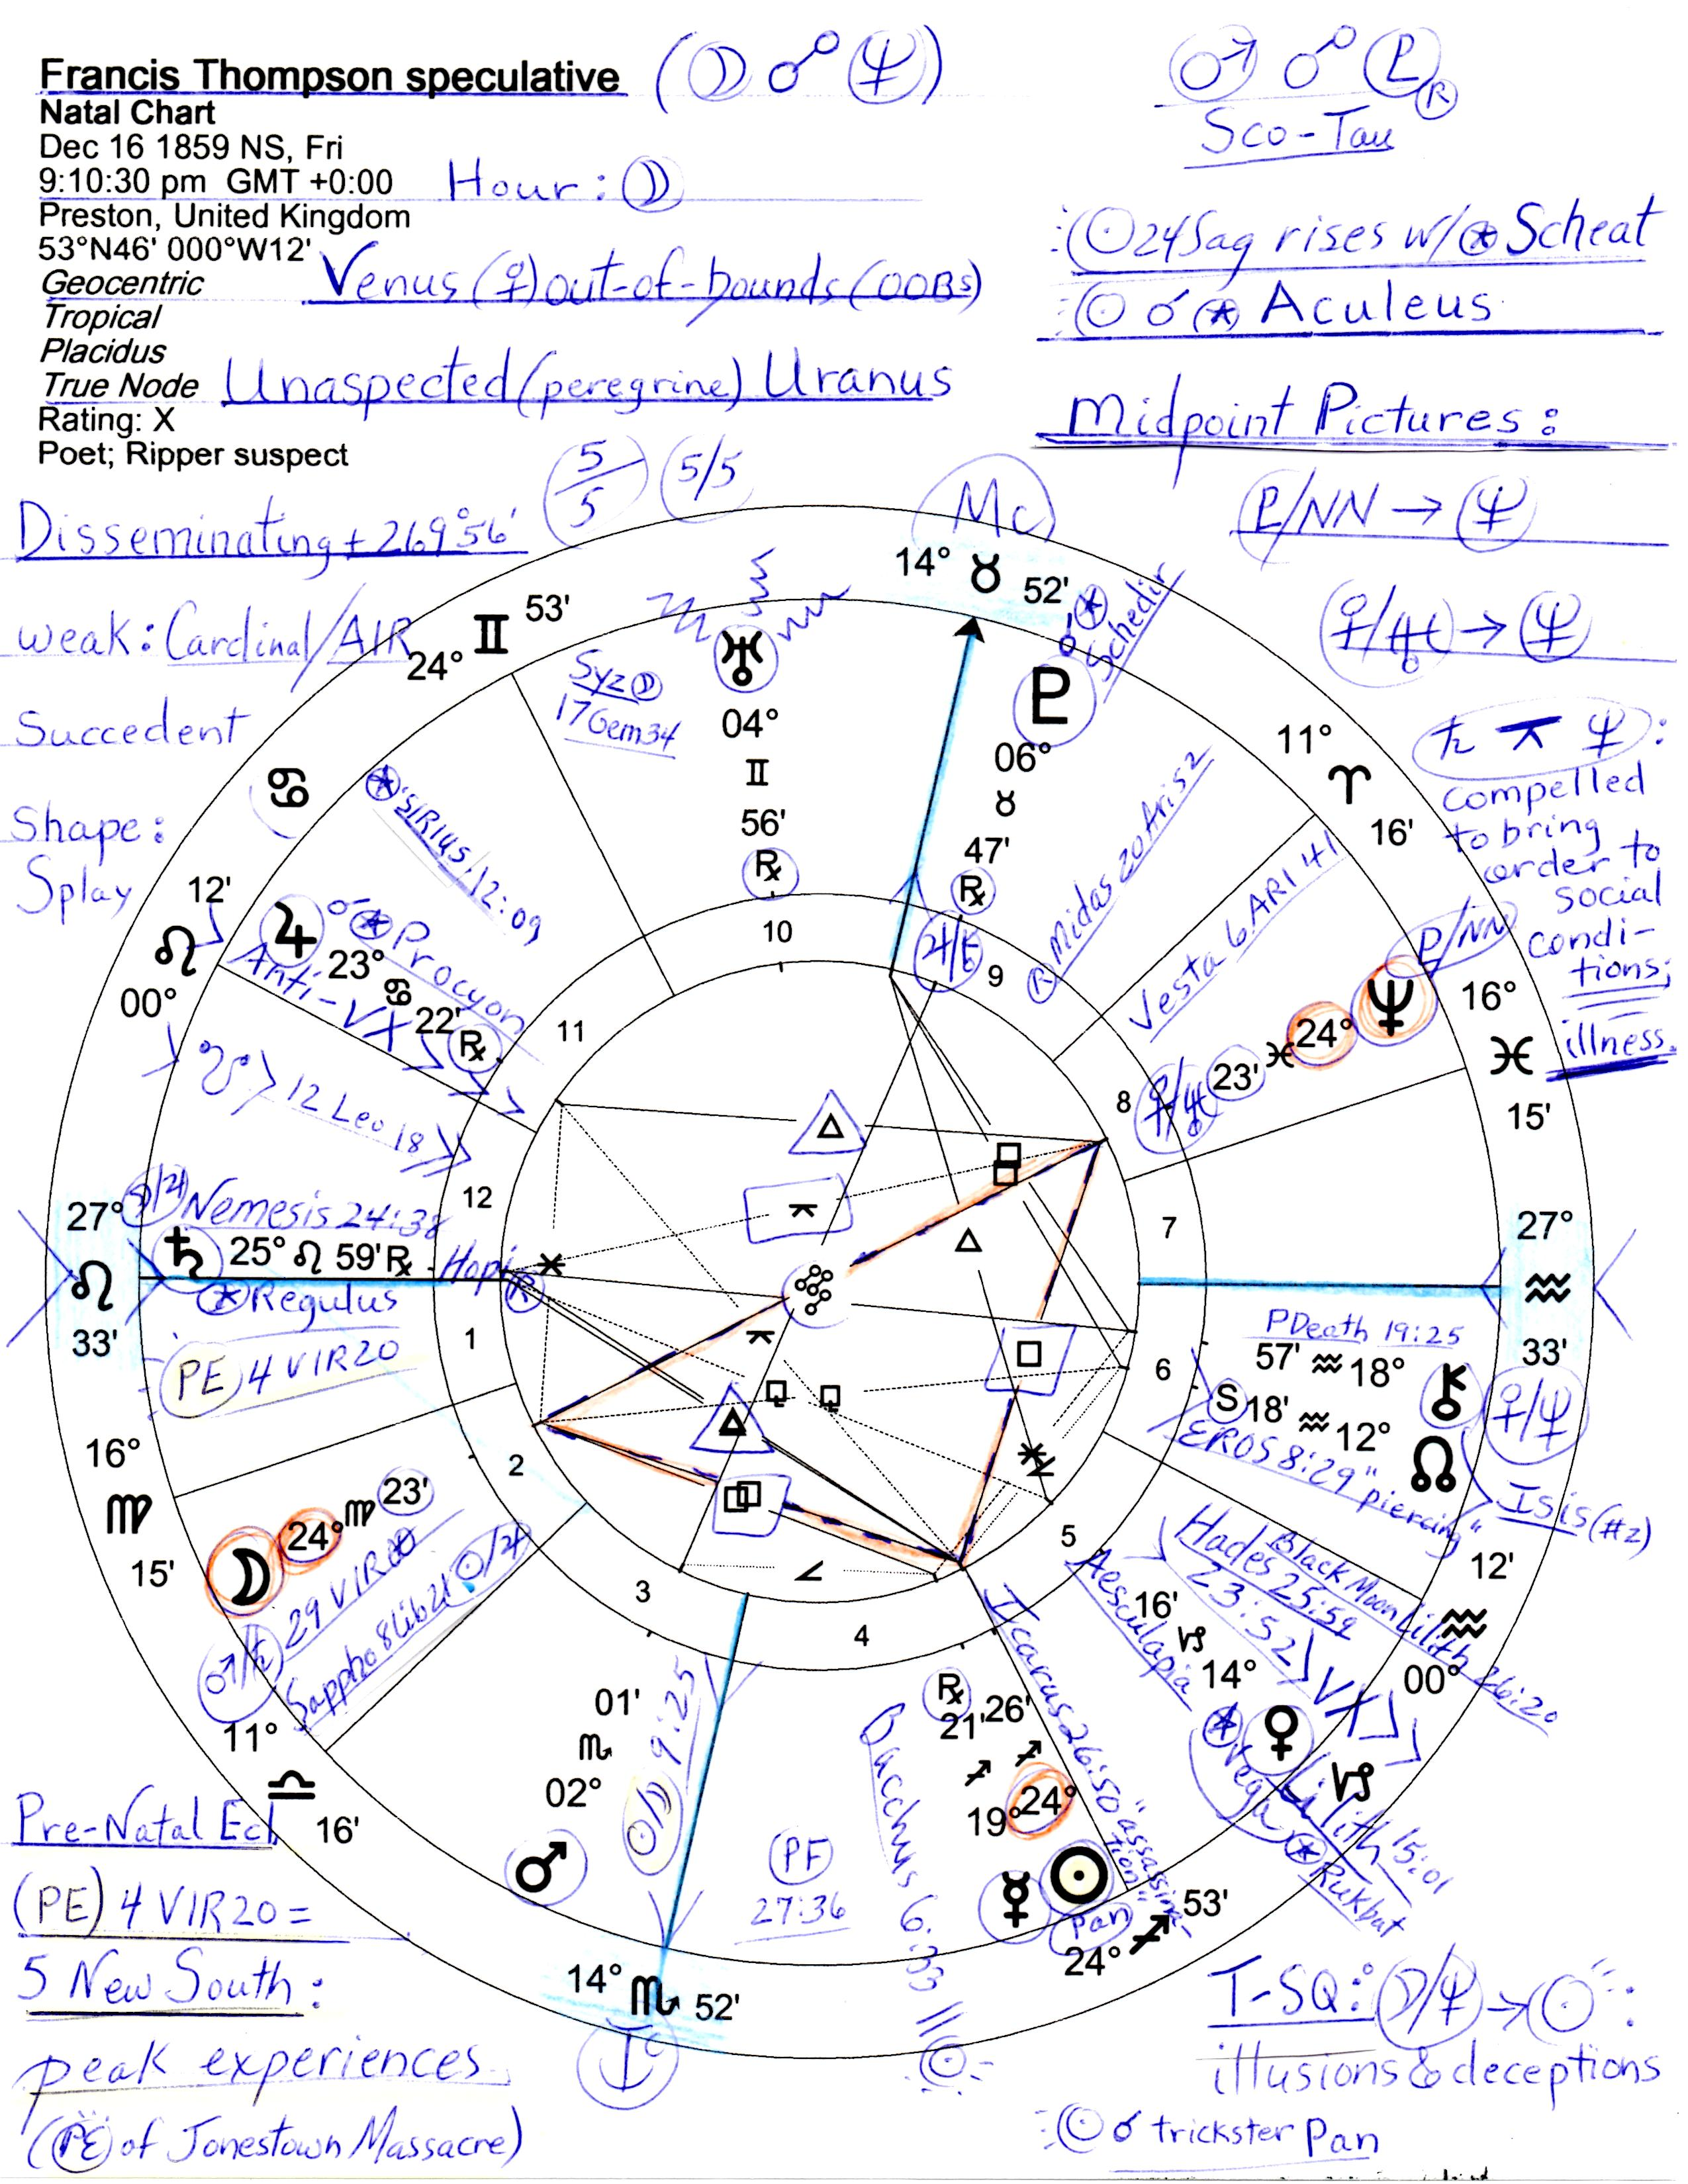 The stars of poet francis thompson ripper suspect judes threshold francis thompson speculative natal chart geenschuldenfo Image collections